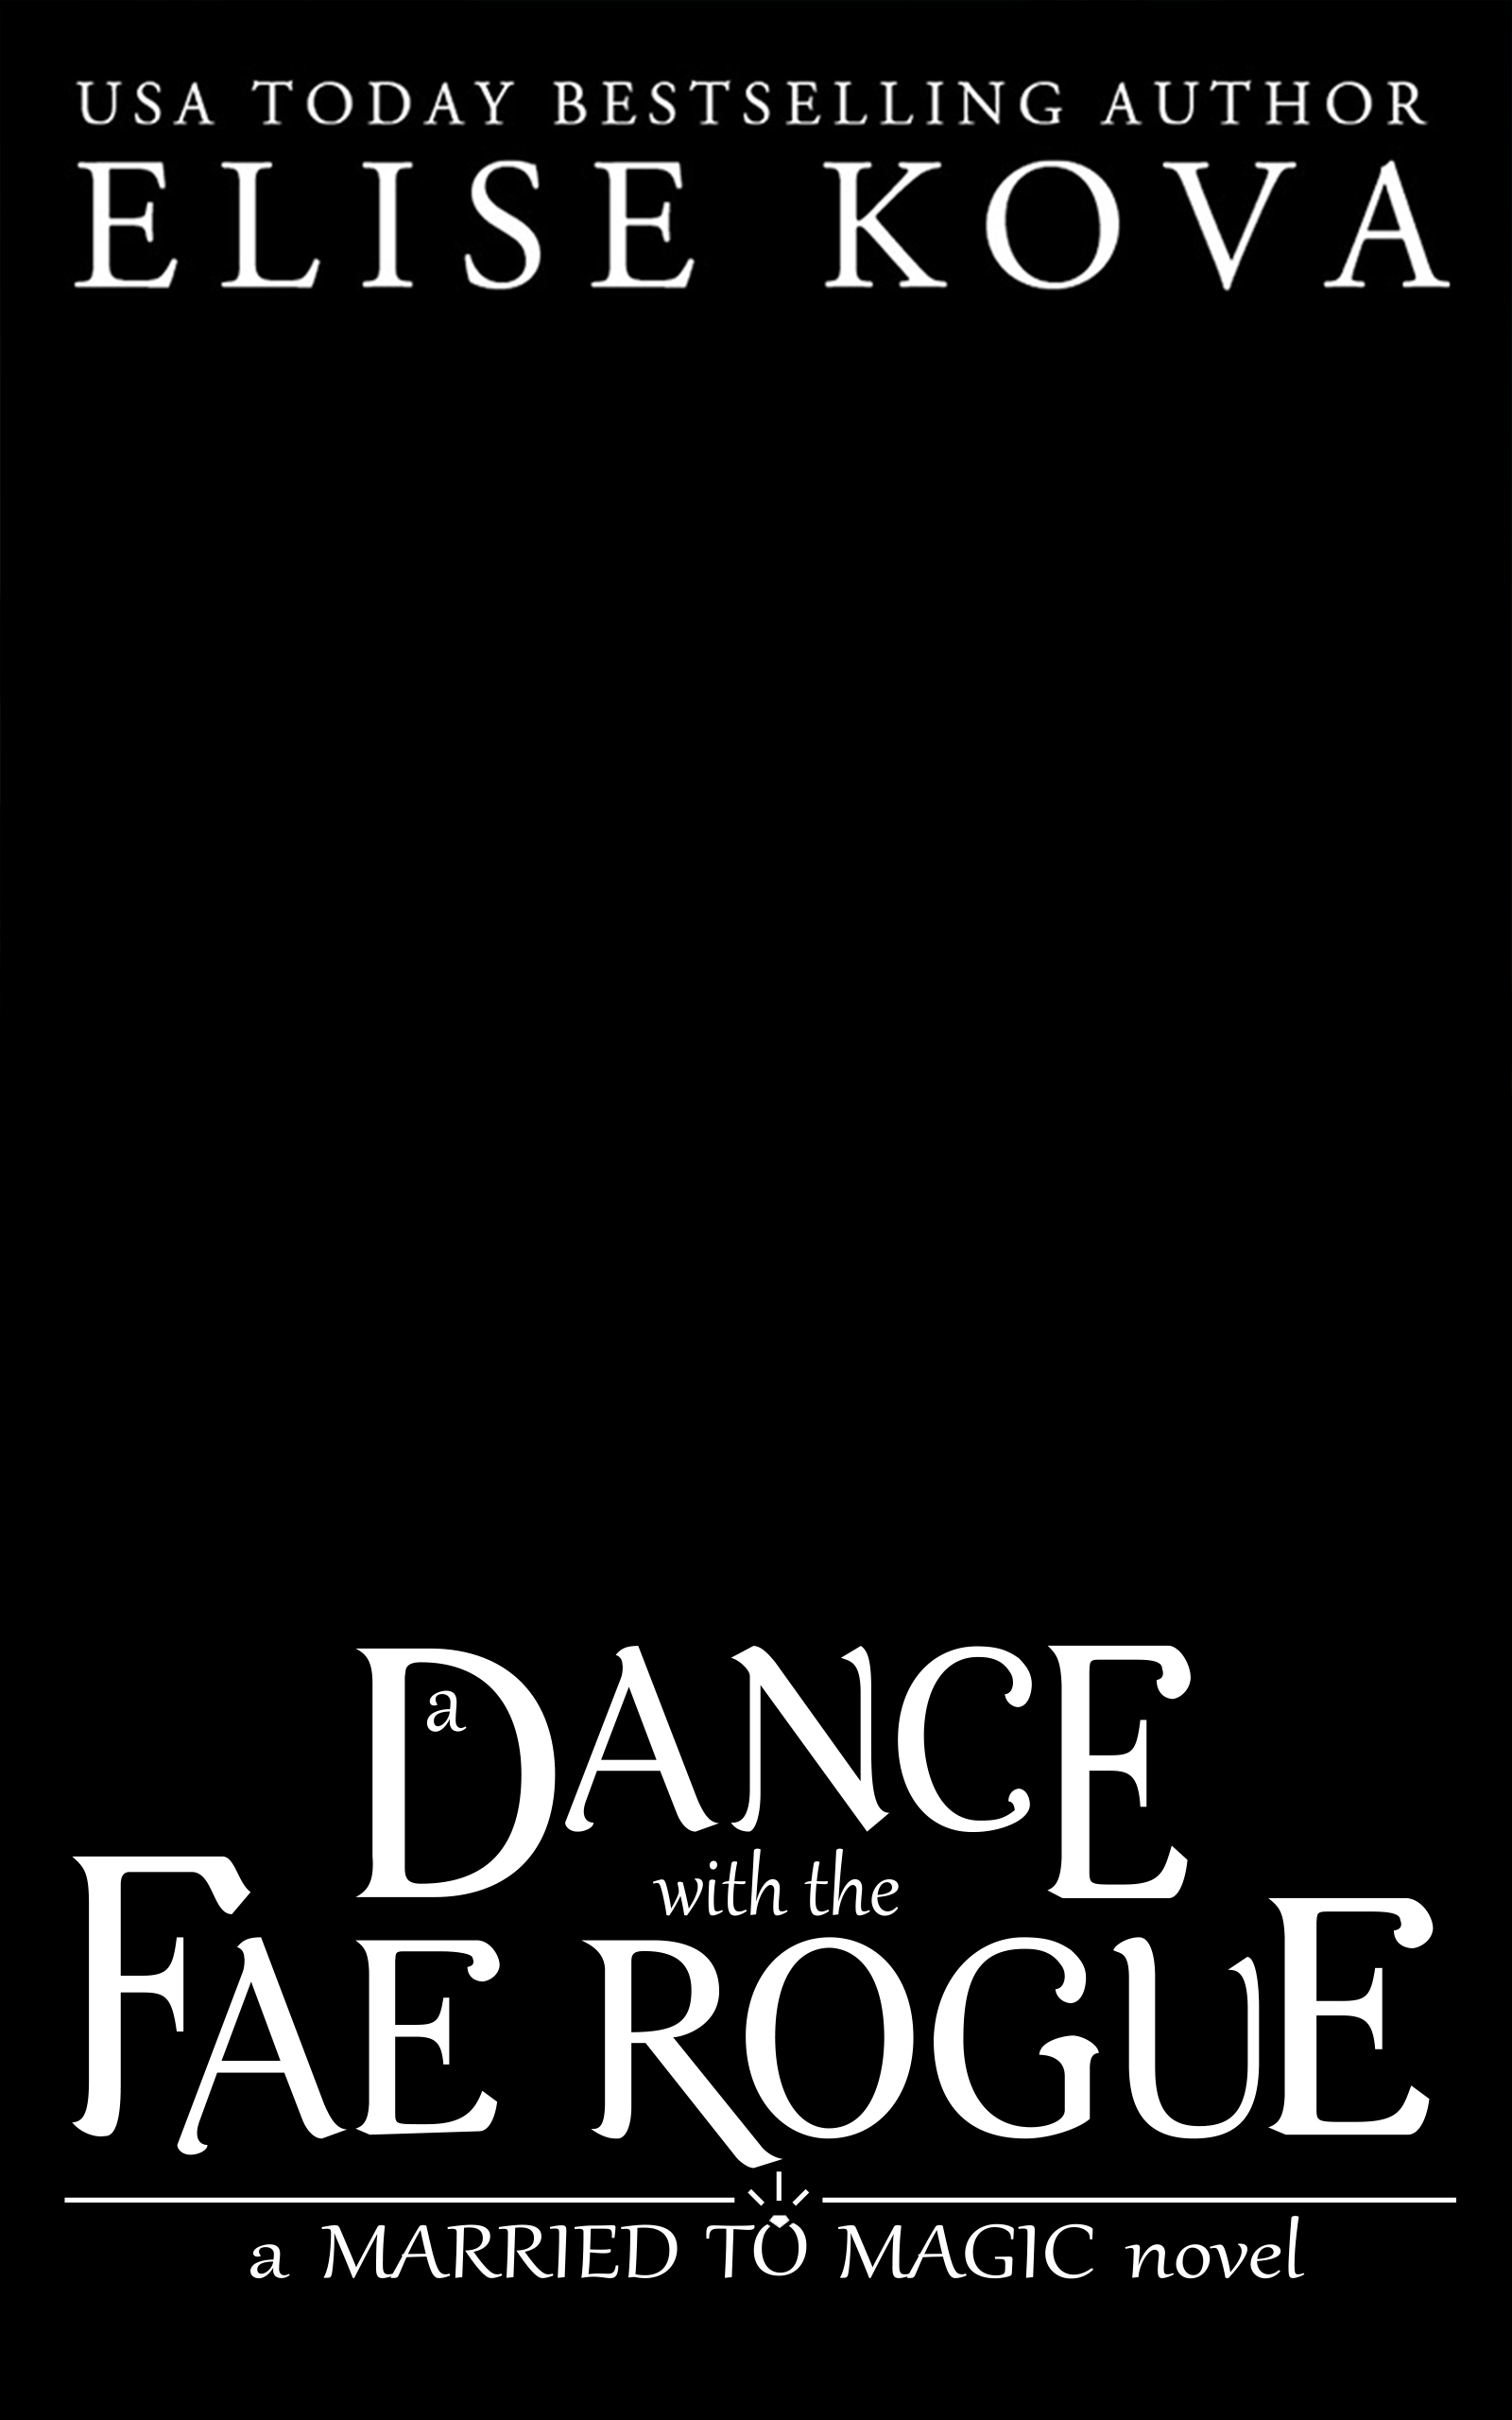 A Dance with the Fae Rogue (Married to Magic) – Elise Kova